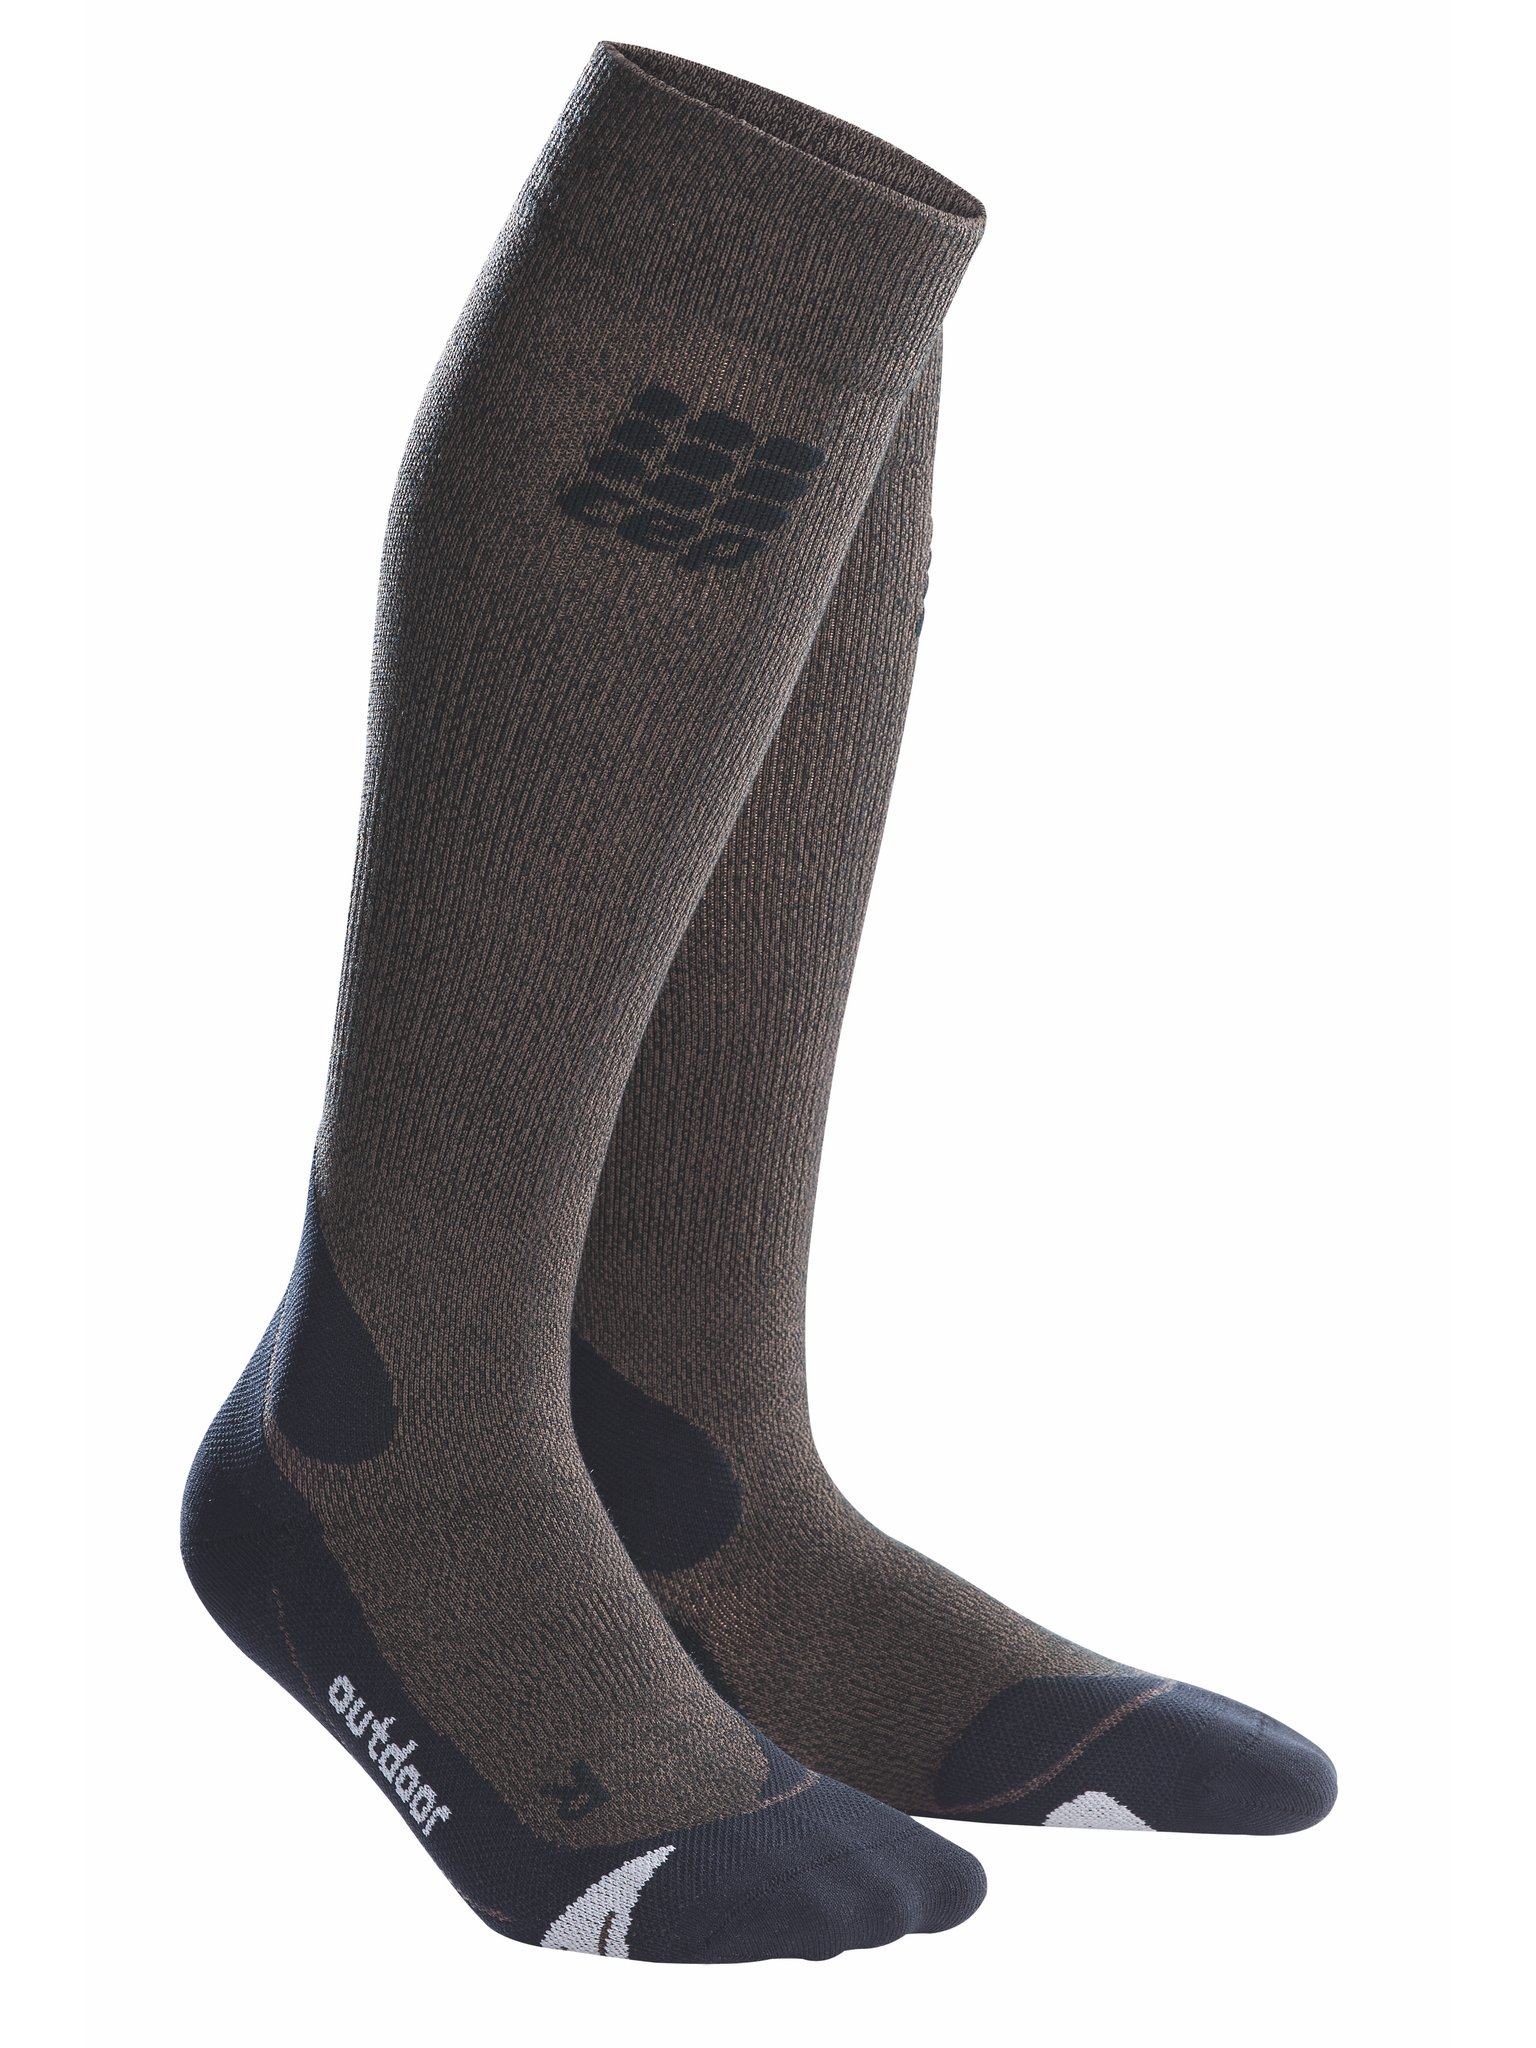 CEP Womens Long Compression Wool Socks Outdoor Merino (Brown/Black) 2 by CEP